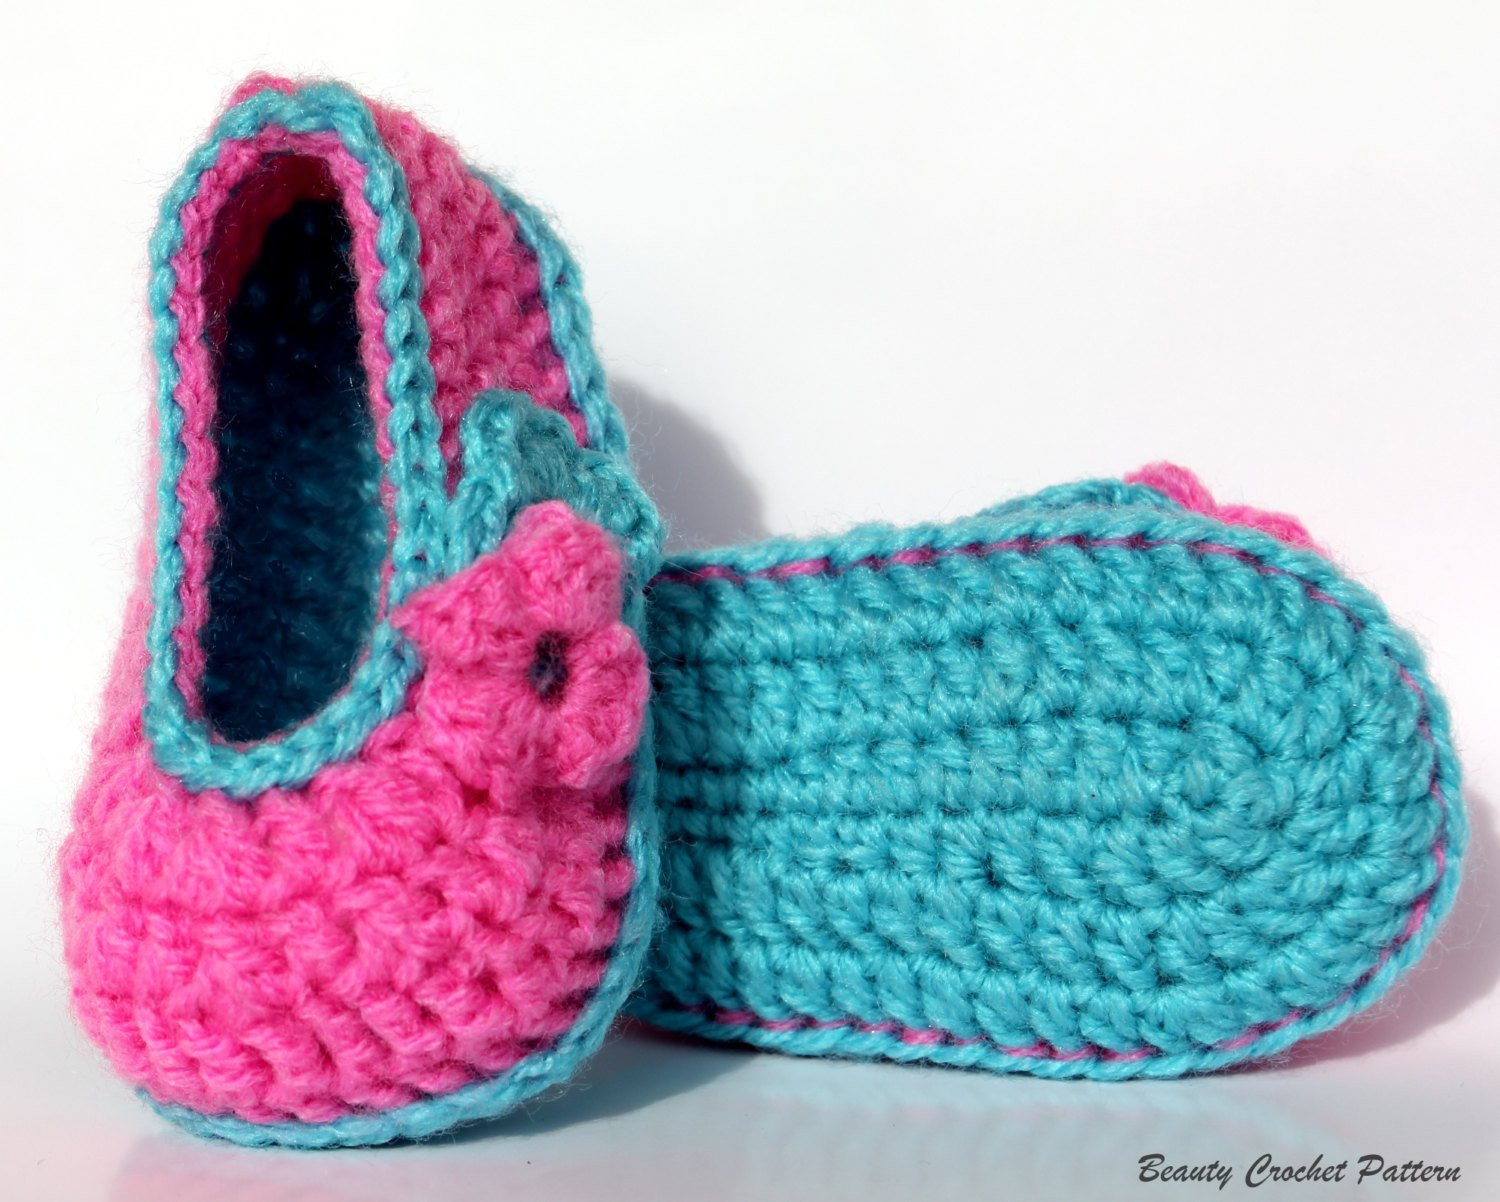 Crochet for Baby Girl New Crochet Baby Pattern Barbie Style Shoes Baby Girl Crochet Of Top 41 Pics Crochet for Baby Girl